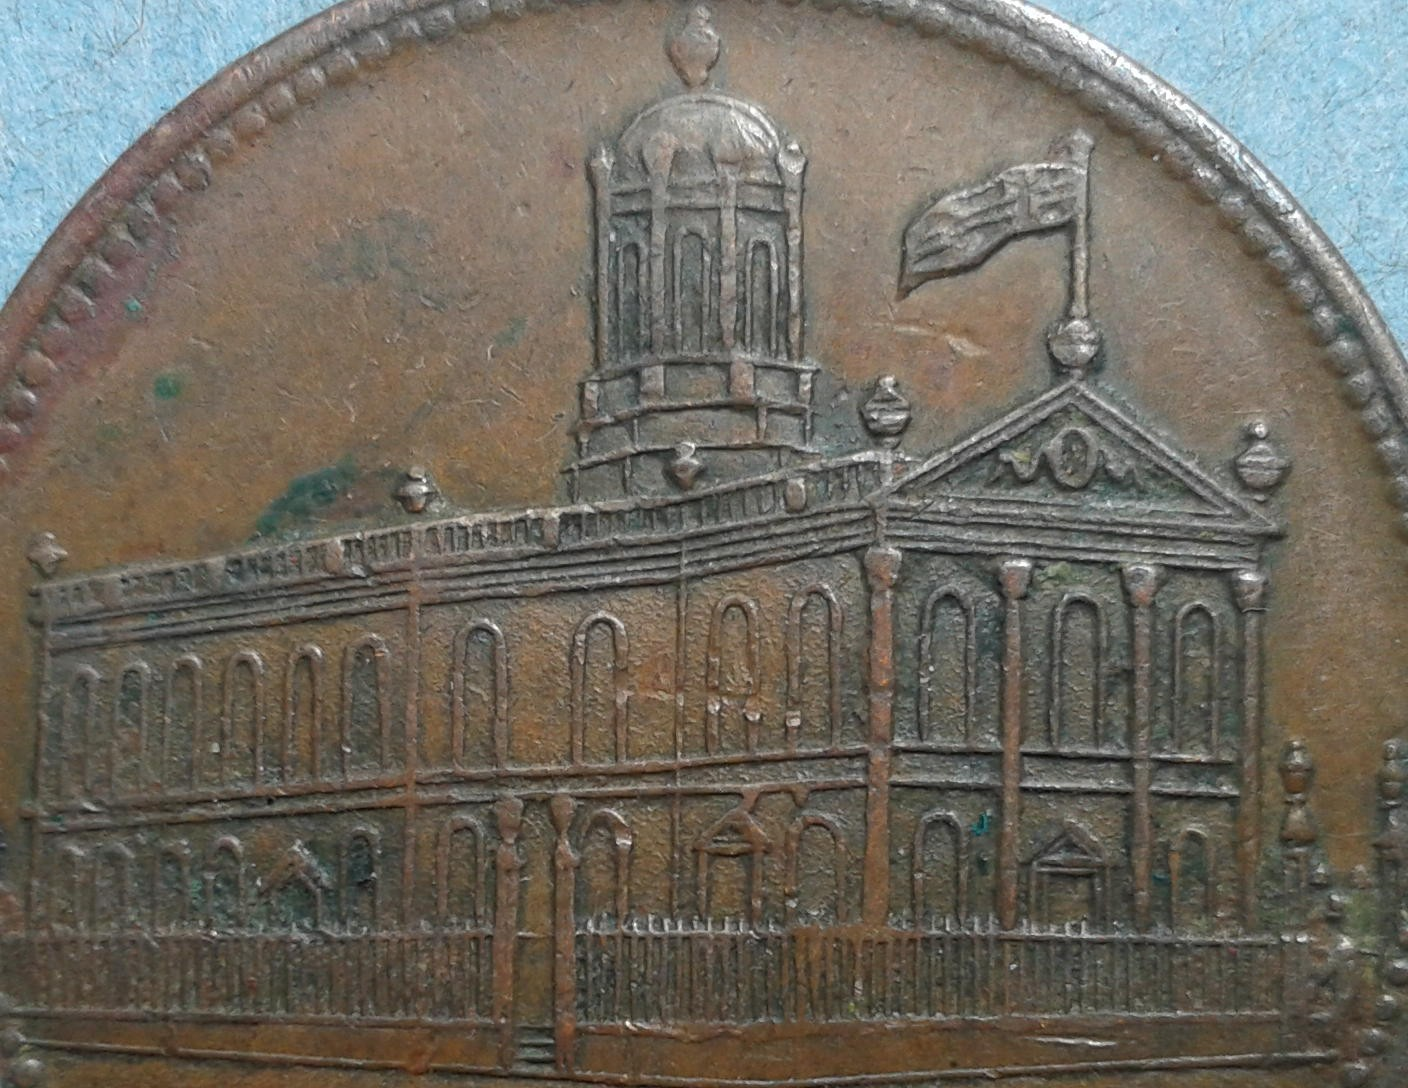 Coinreverse01 detail